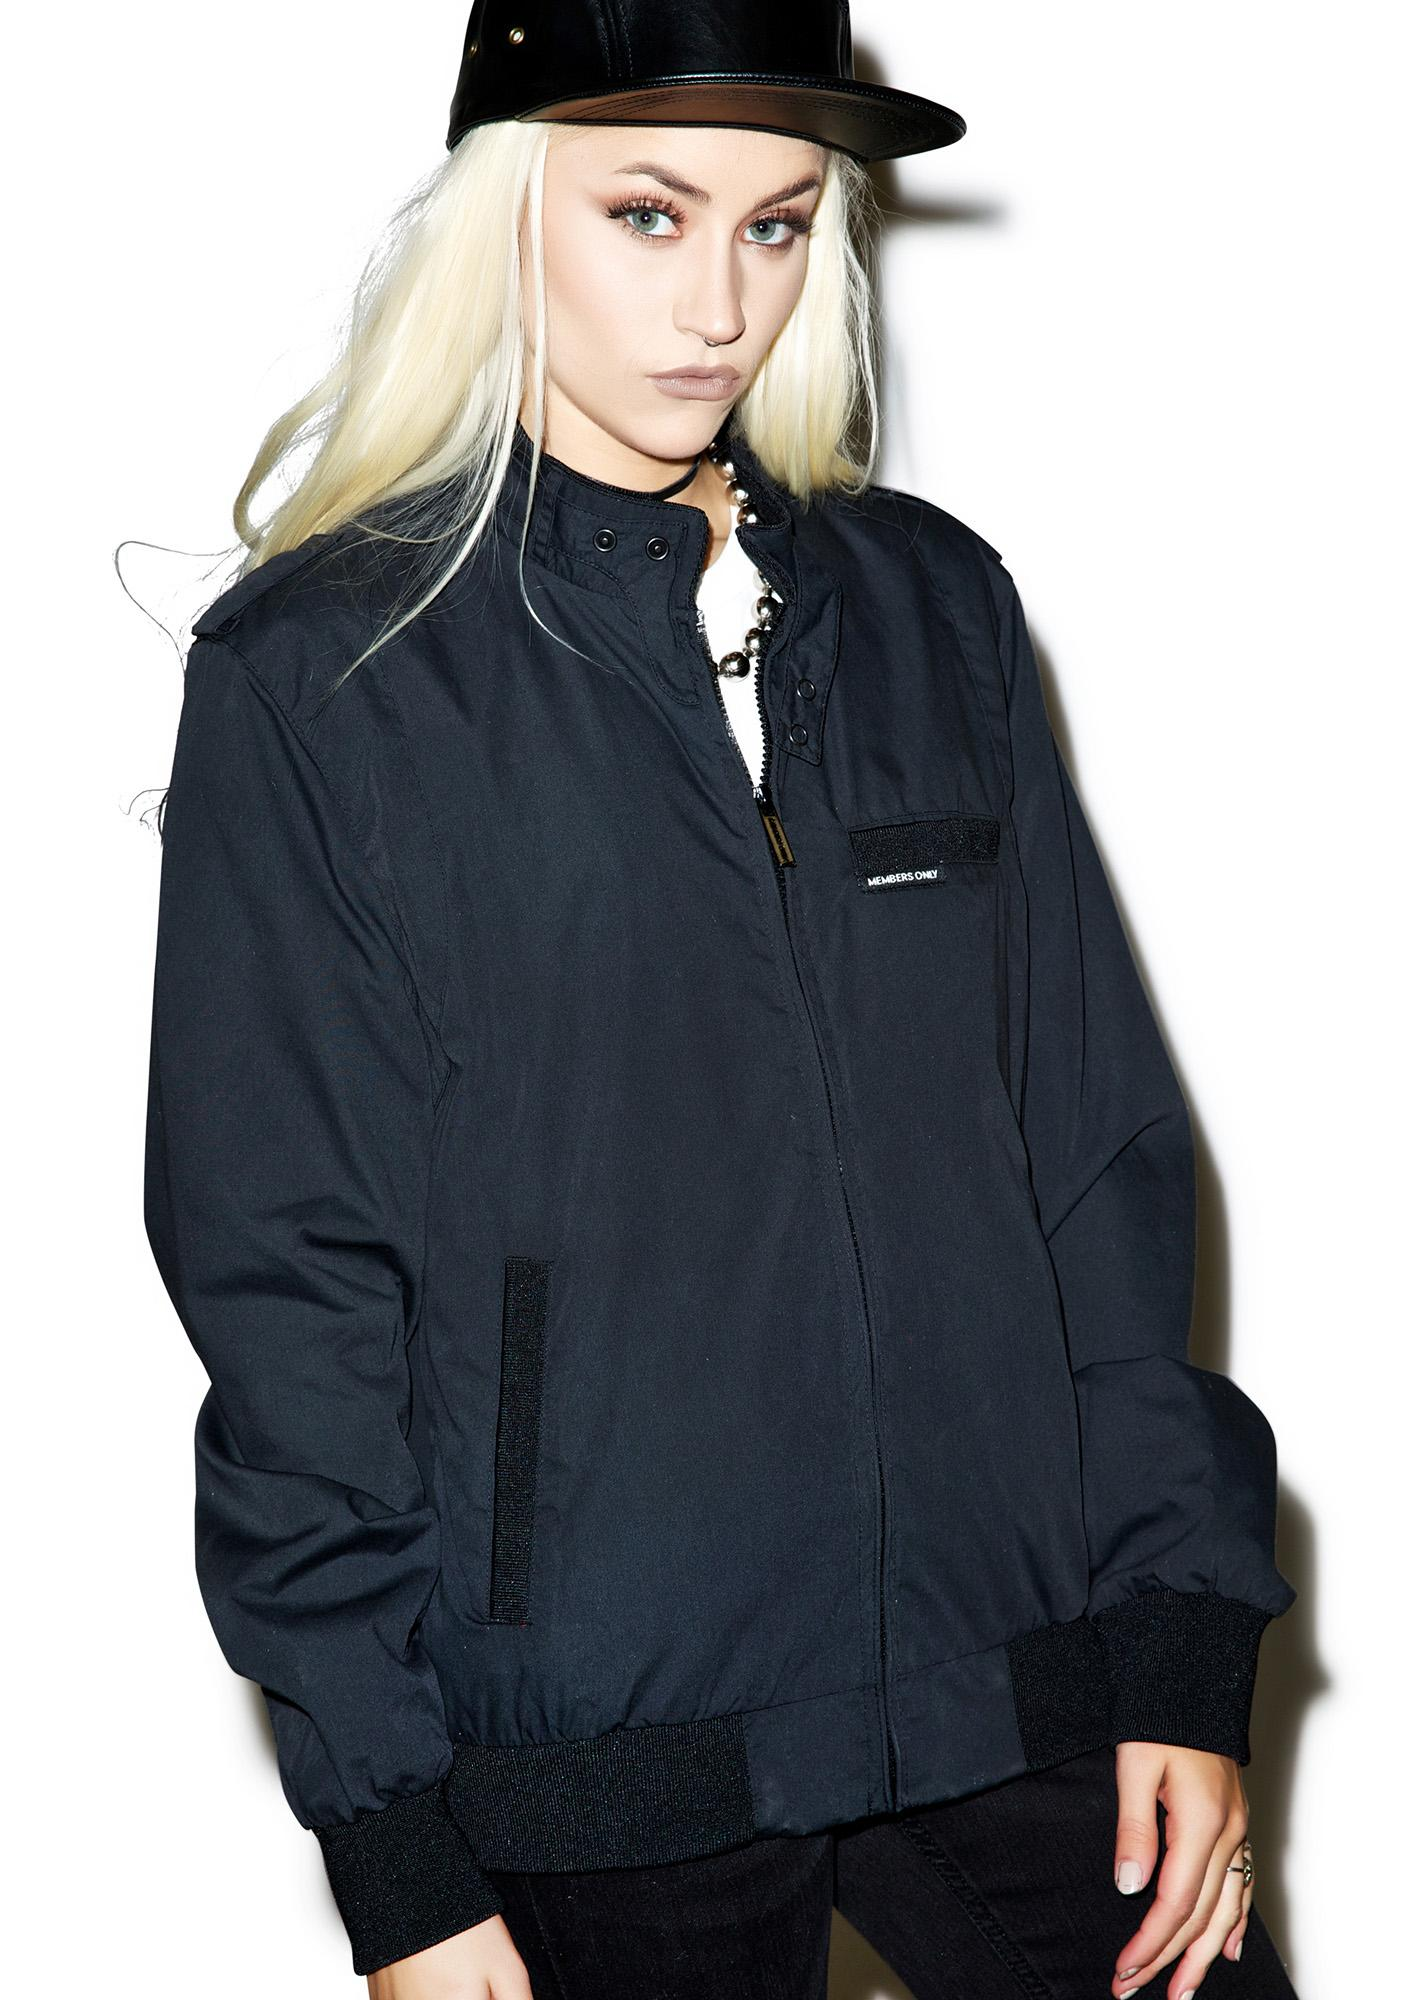 Members Only The Onyx Classic Iconic Racer Jacket